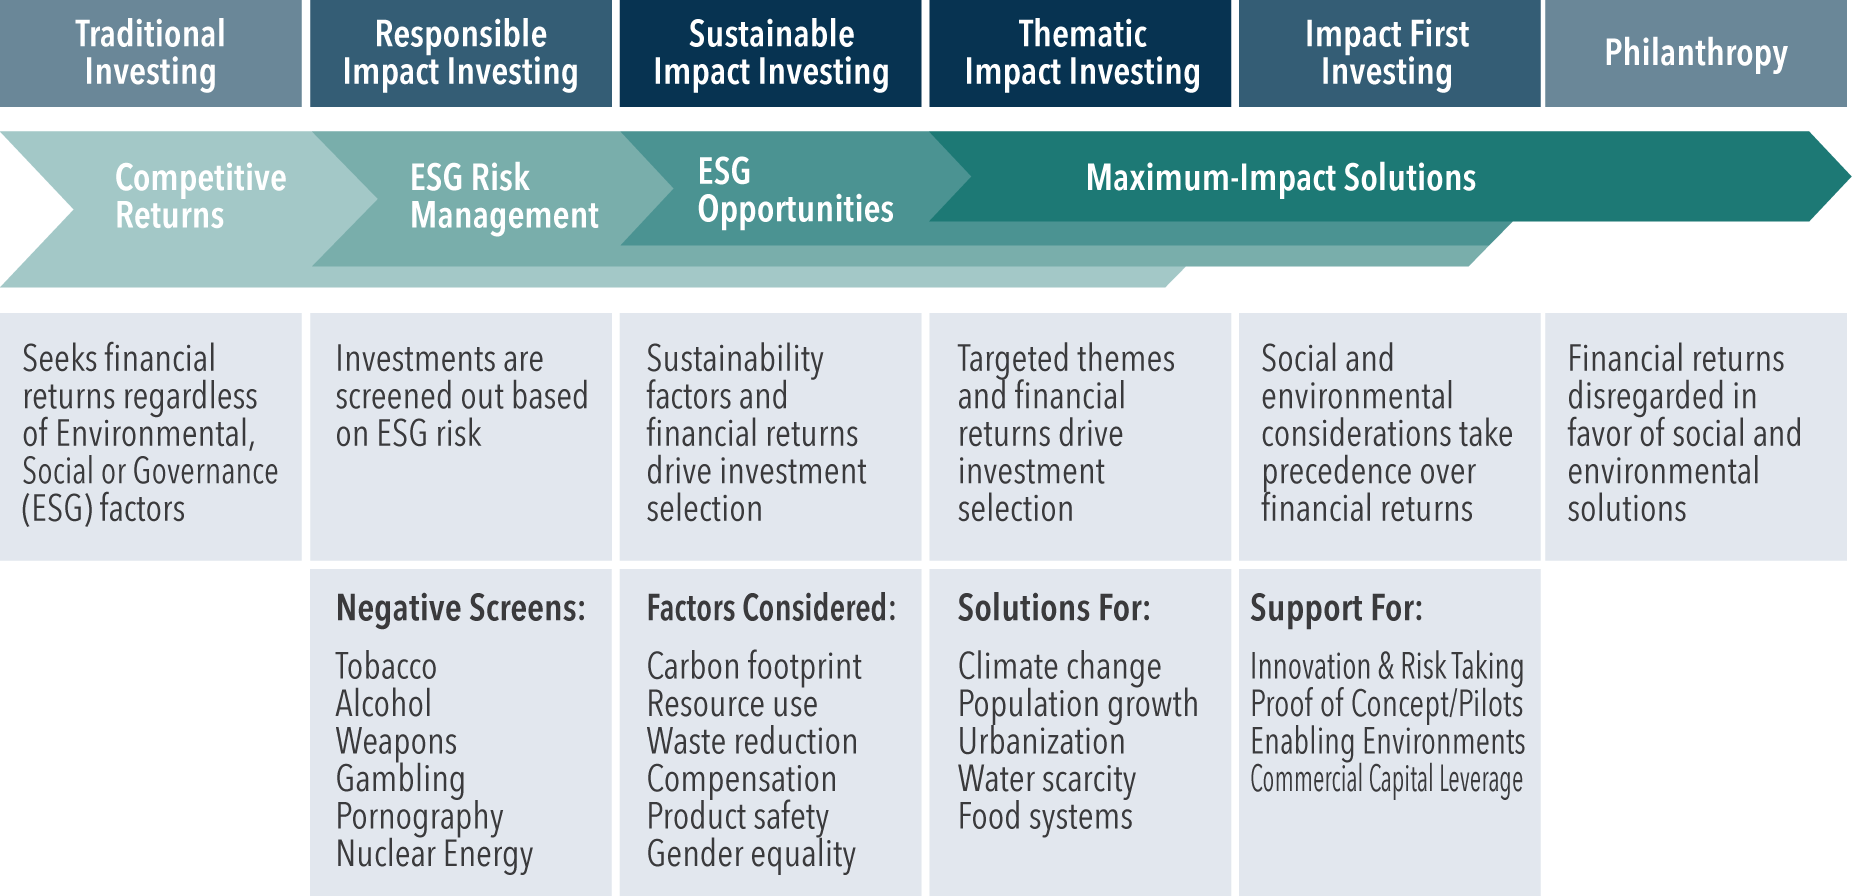 Impact Investing Spectrum by Sonen Capital